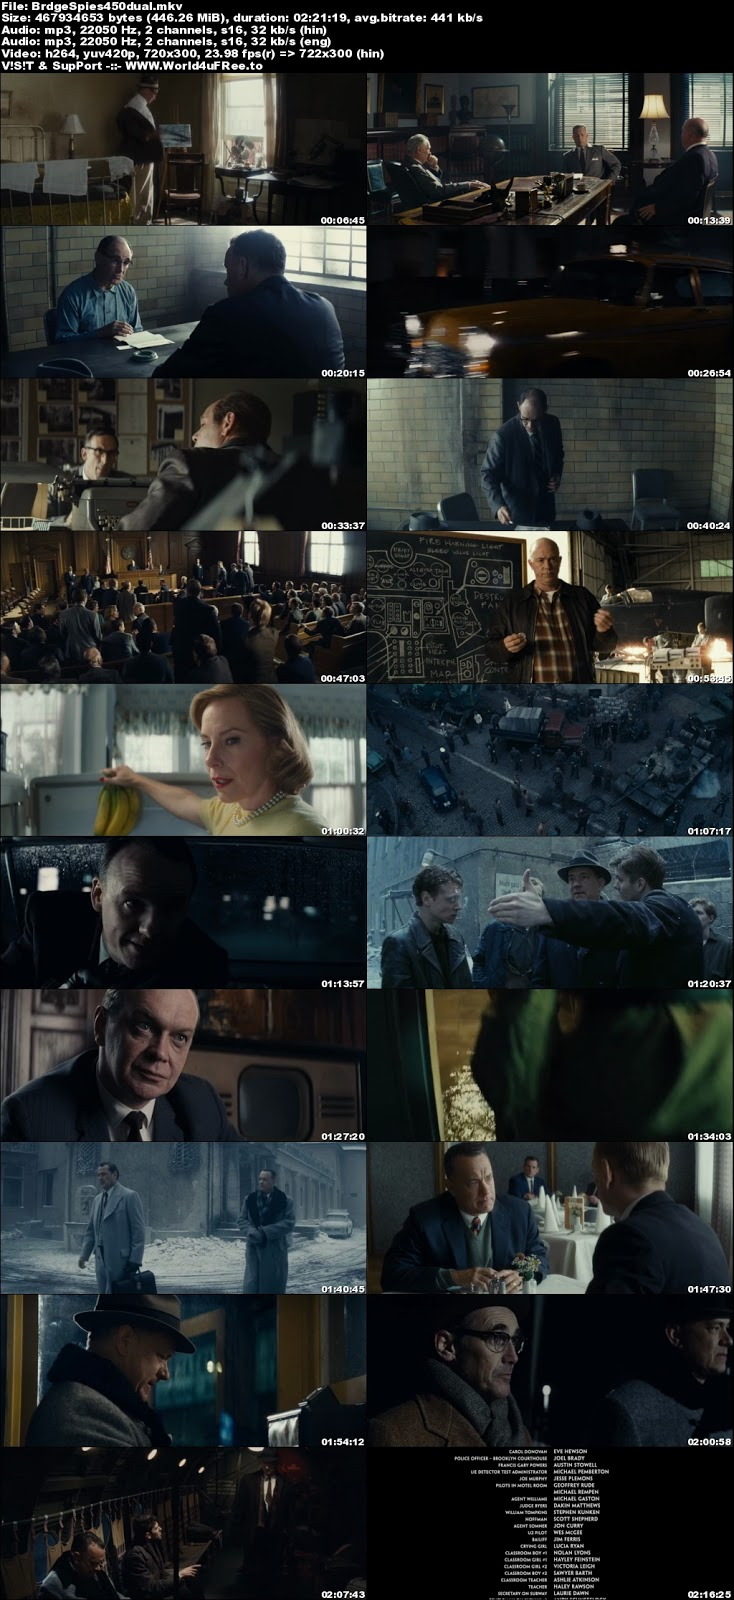 Bridge of Spies 2015 Dual Audio BRRip 480p 450Mb x264 classified-ads.expert hollywood movie Bridge of Spies 2015 hindi dubbed dual audio 480p brrip bluray compressed small size 300mb free download or watch online at classified-ads.expert